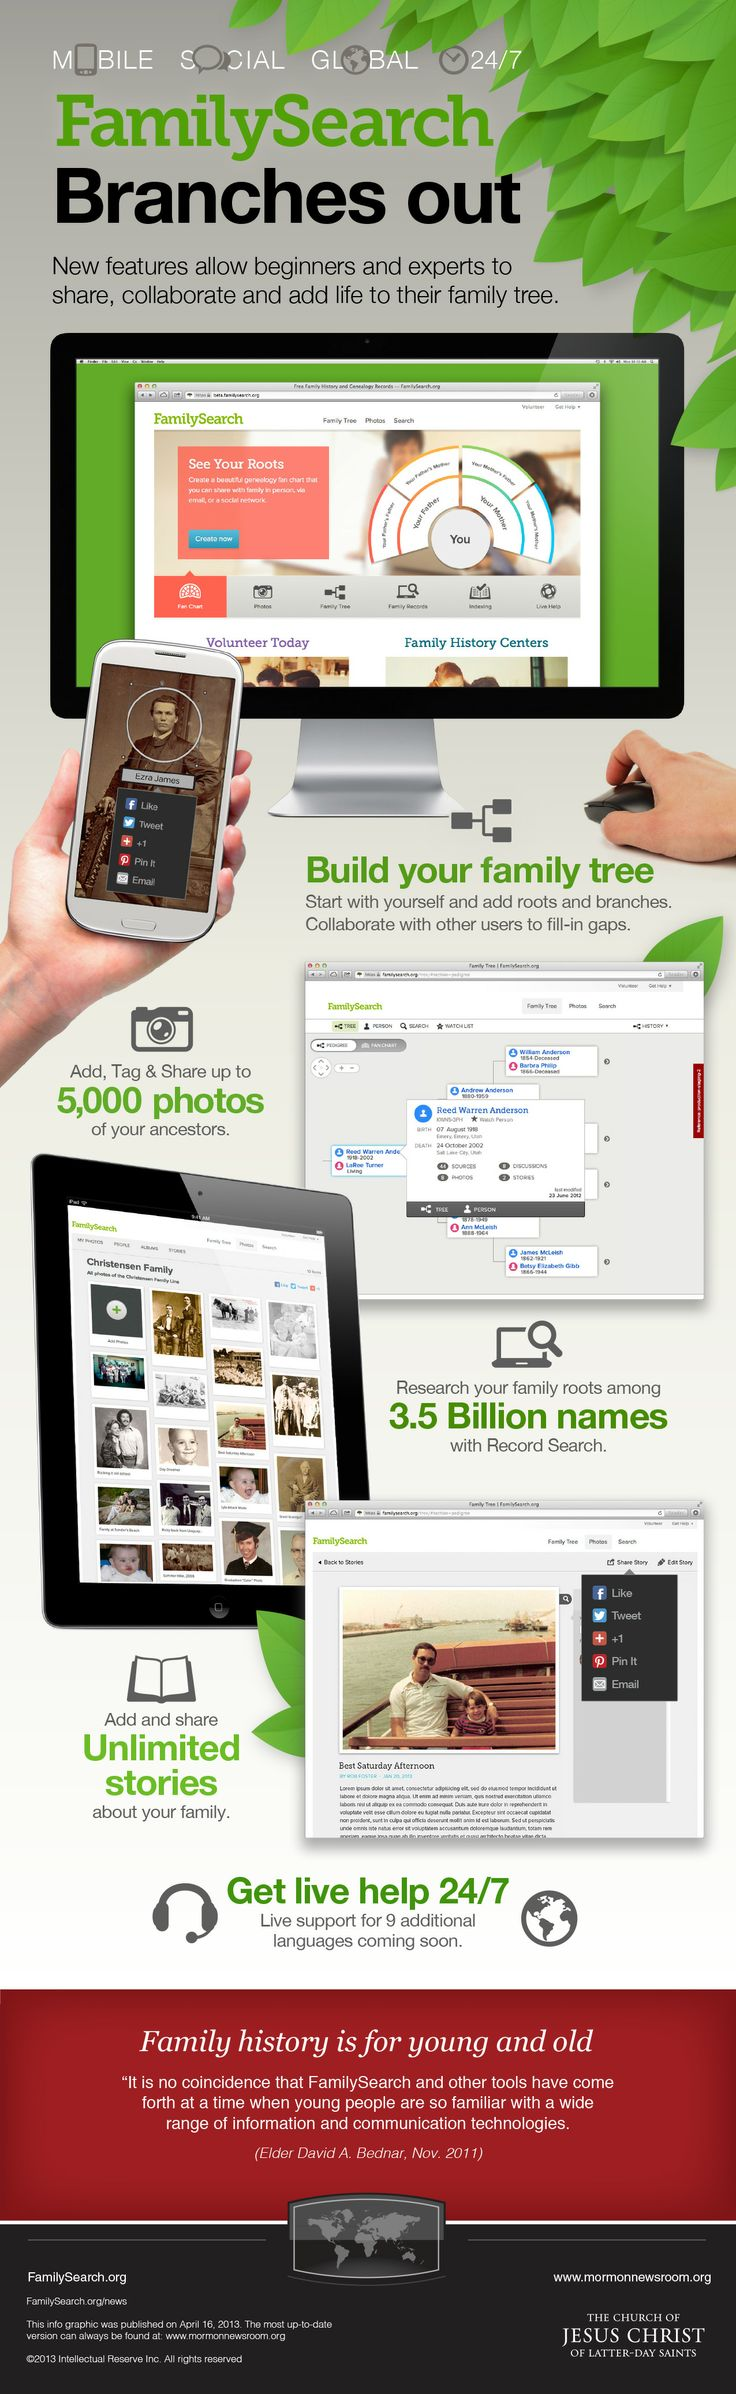 Family History is for young and old! Check out these new features at FamilySearch.org // I love using this website for researching my family #genealogy